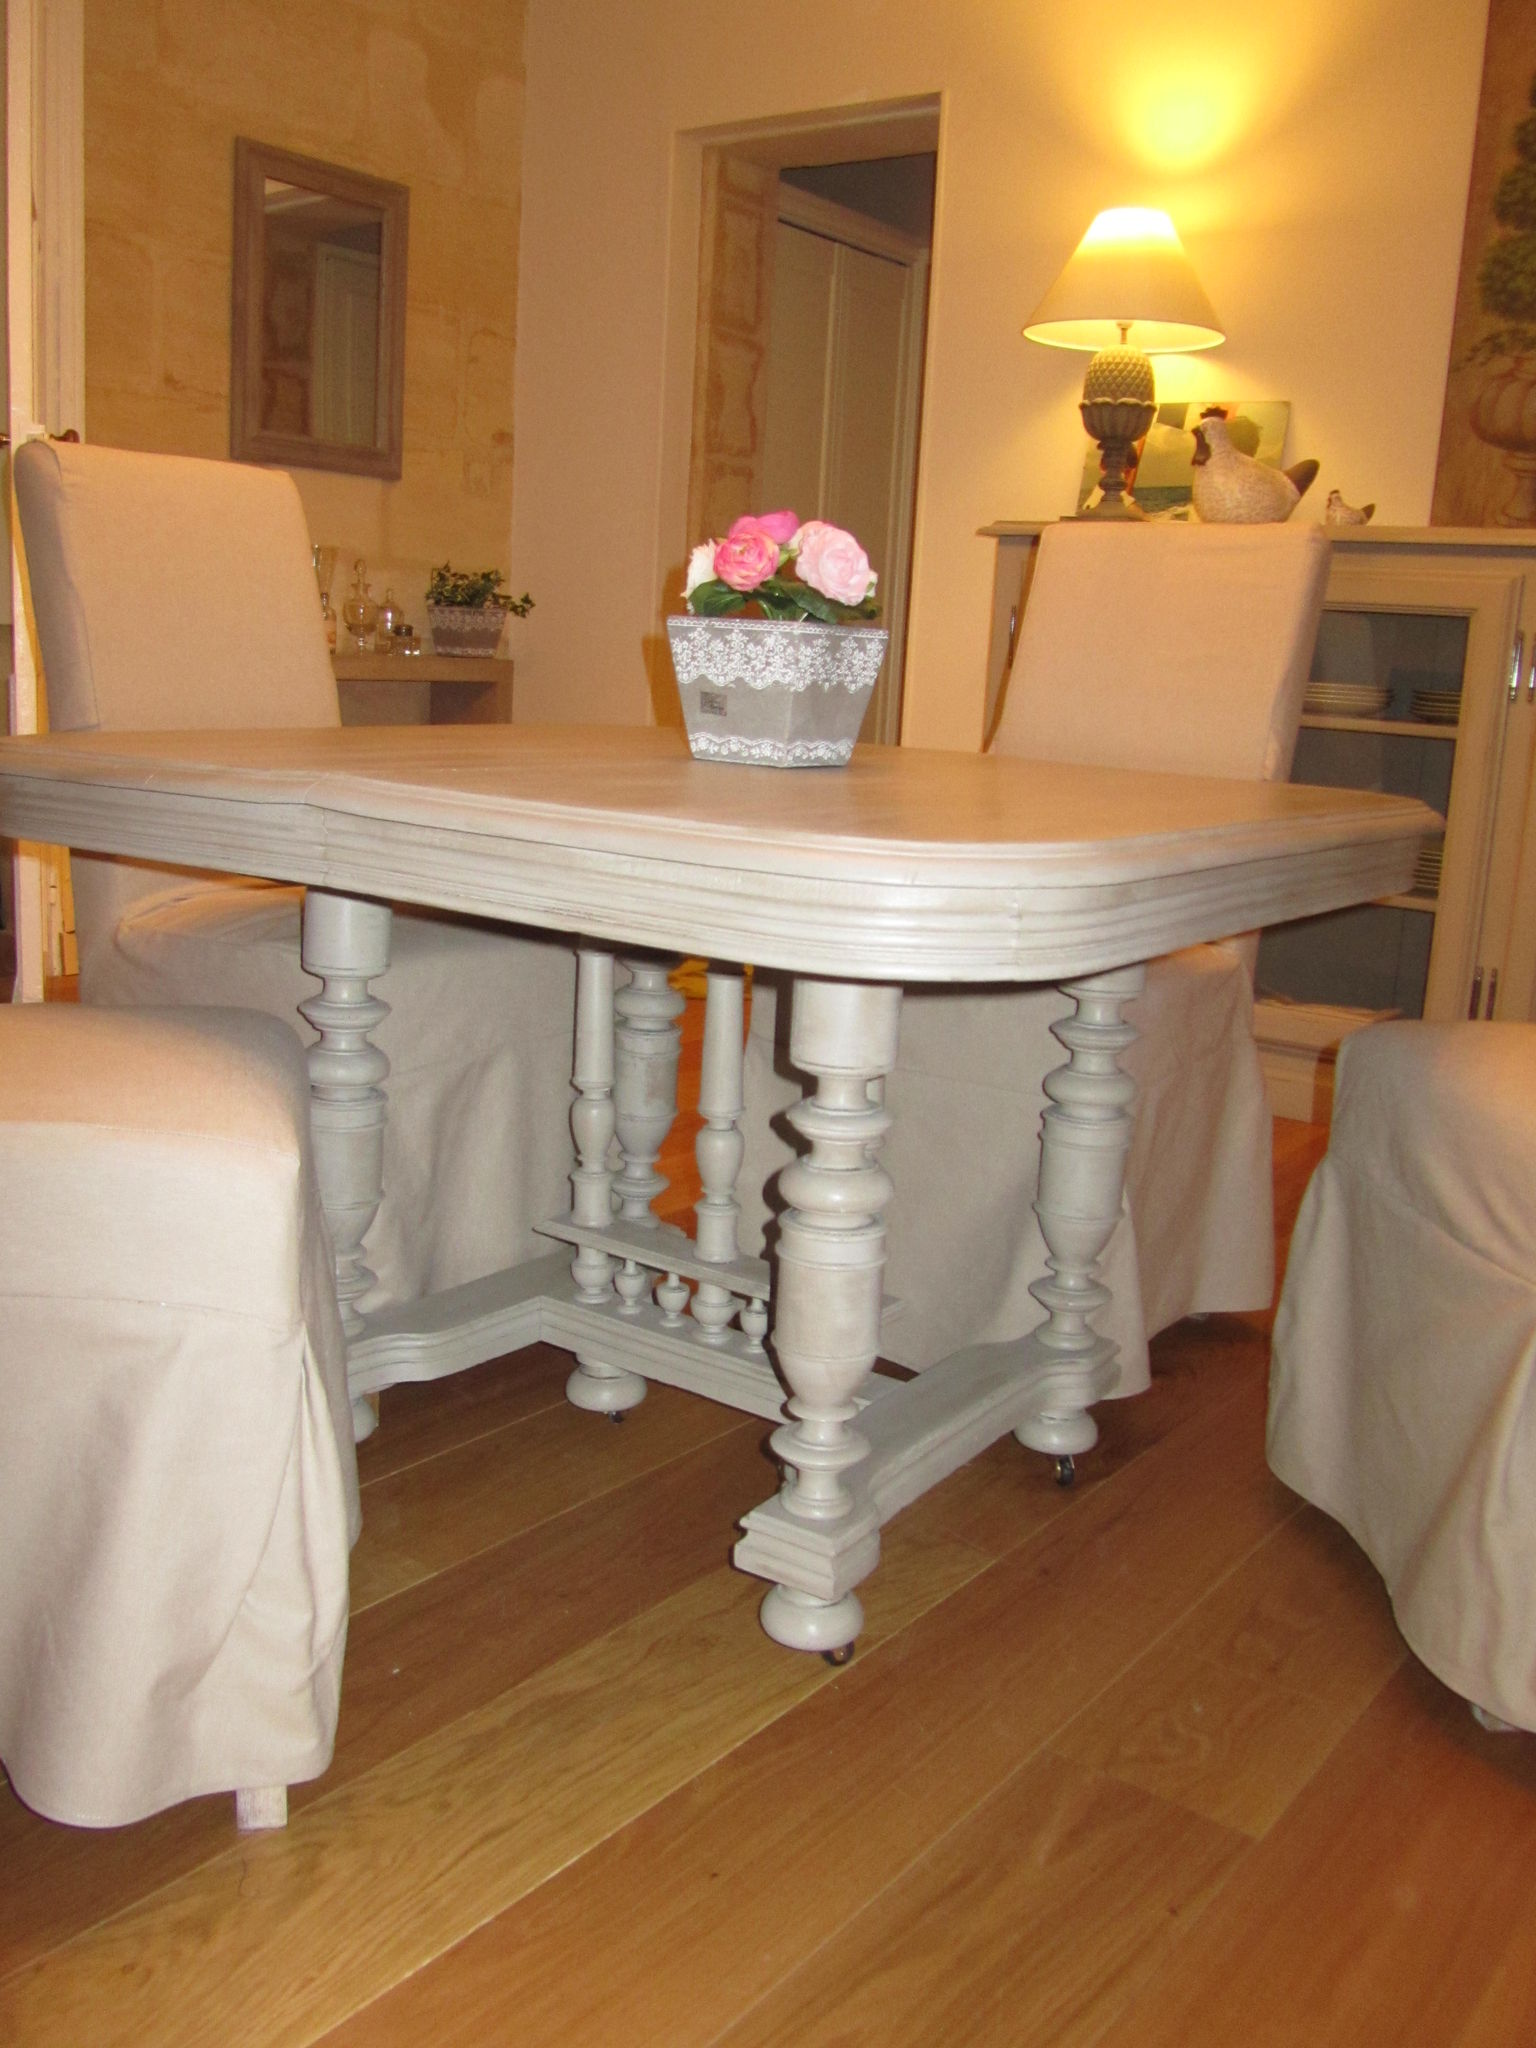 patine table couleur taupe photo de deco les patines sur meubles catherine pendanx. Black Bedroom Furniture Sets. Home Design Ideas